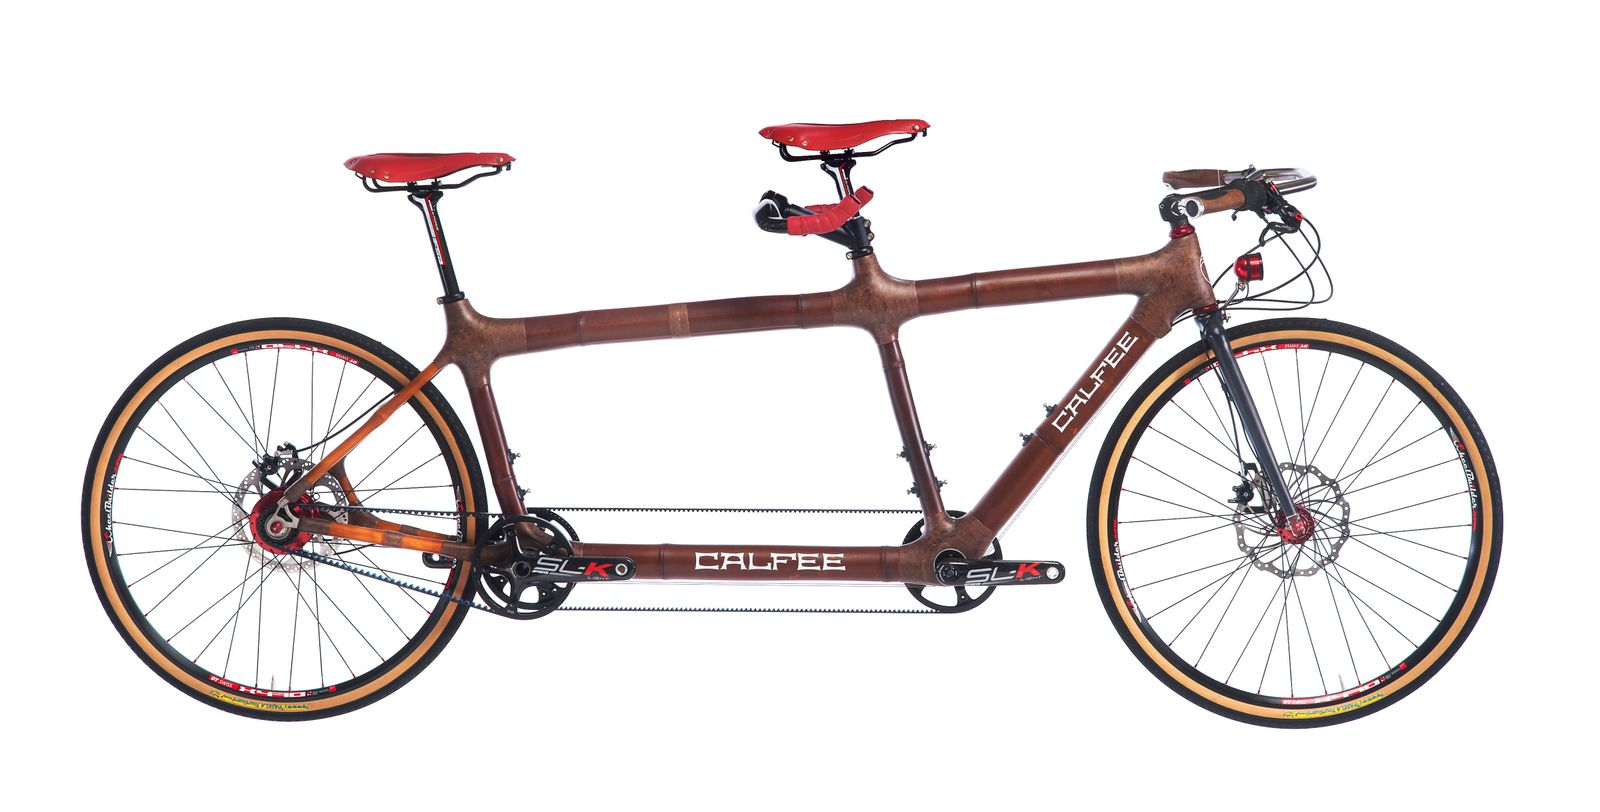 Double Seat Bicycle